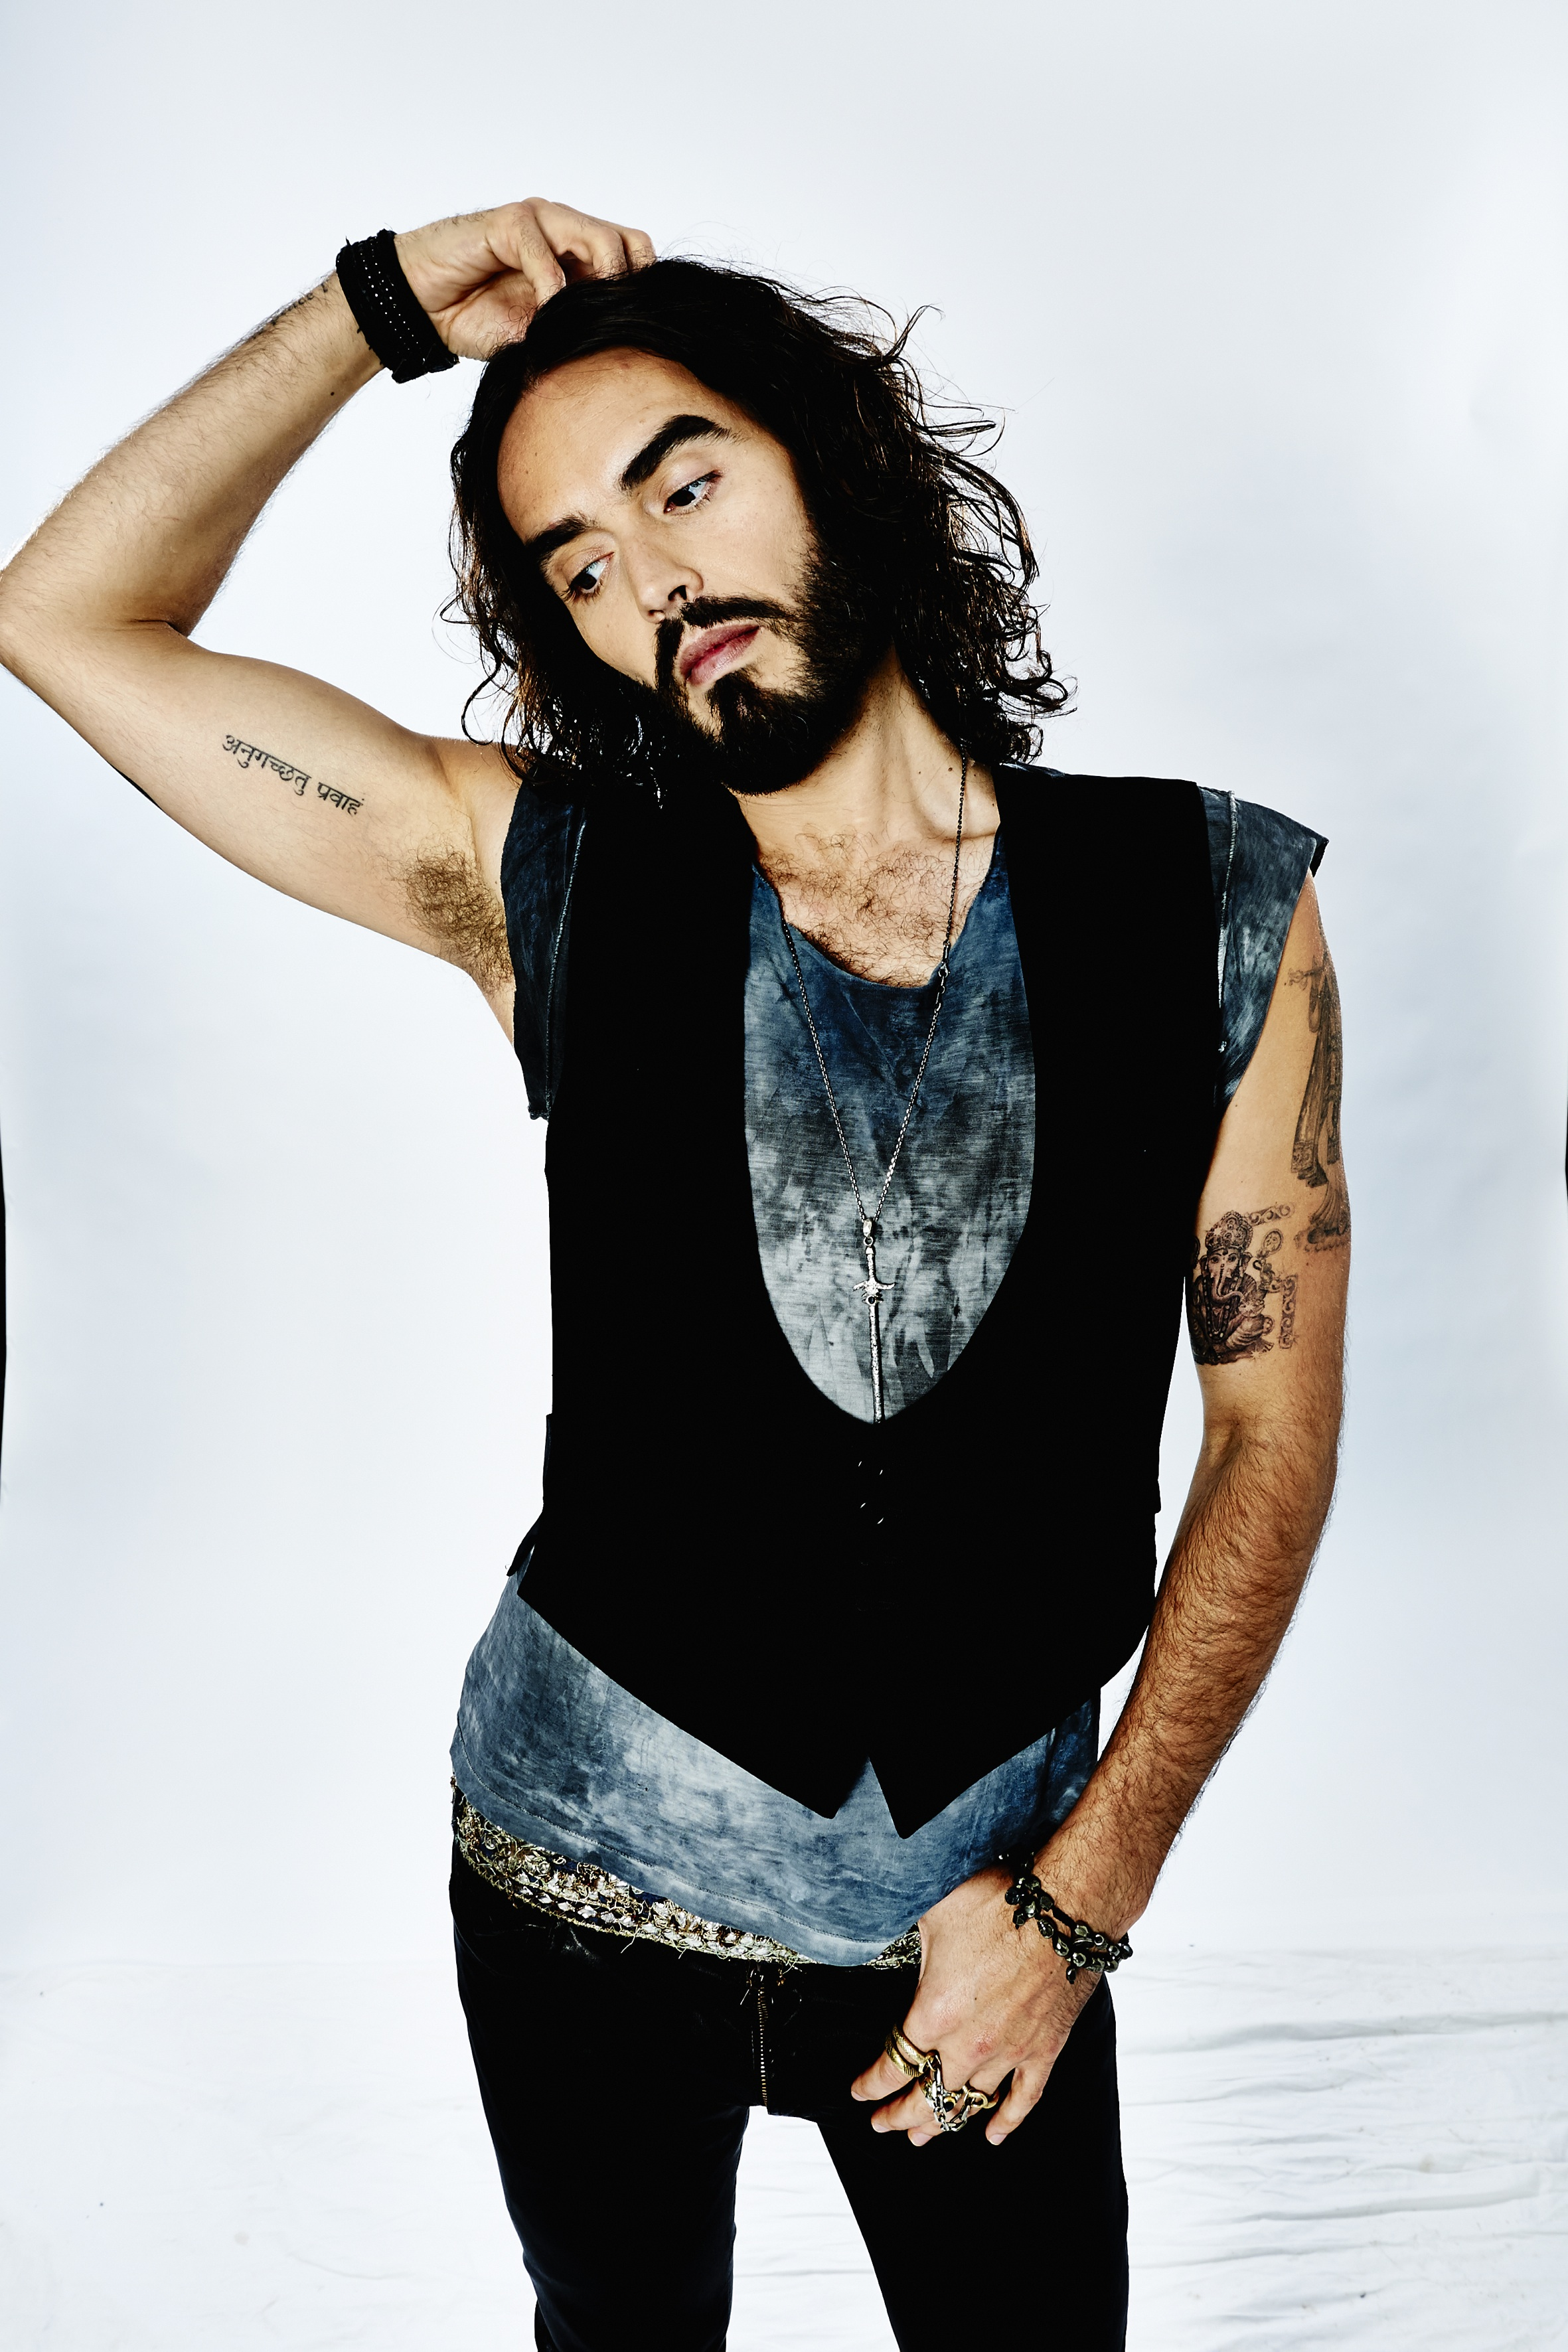 Russell Brand TM